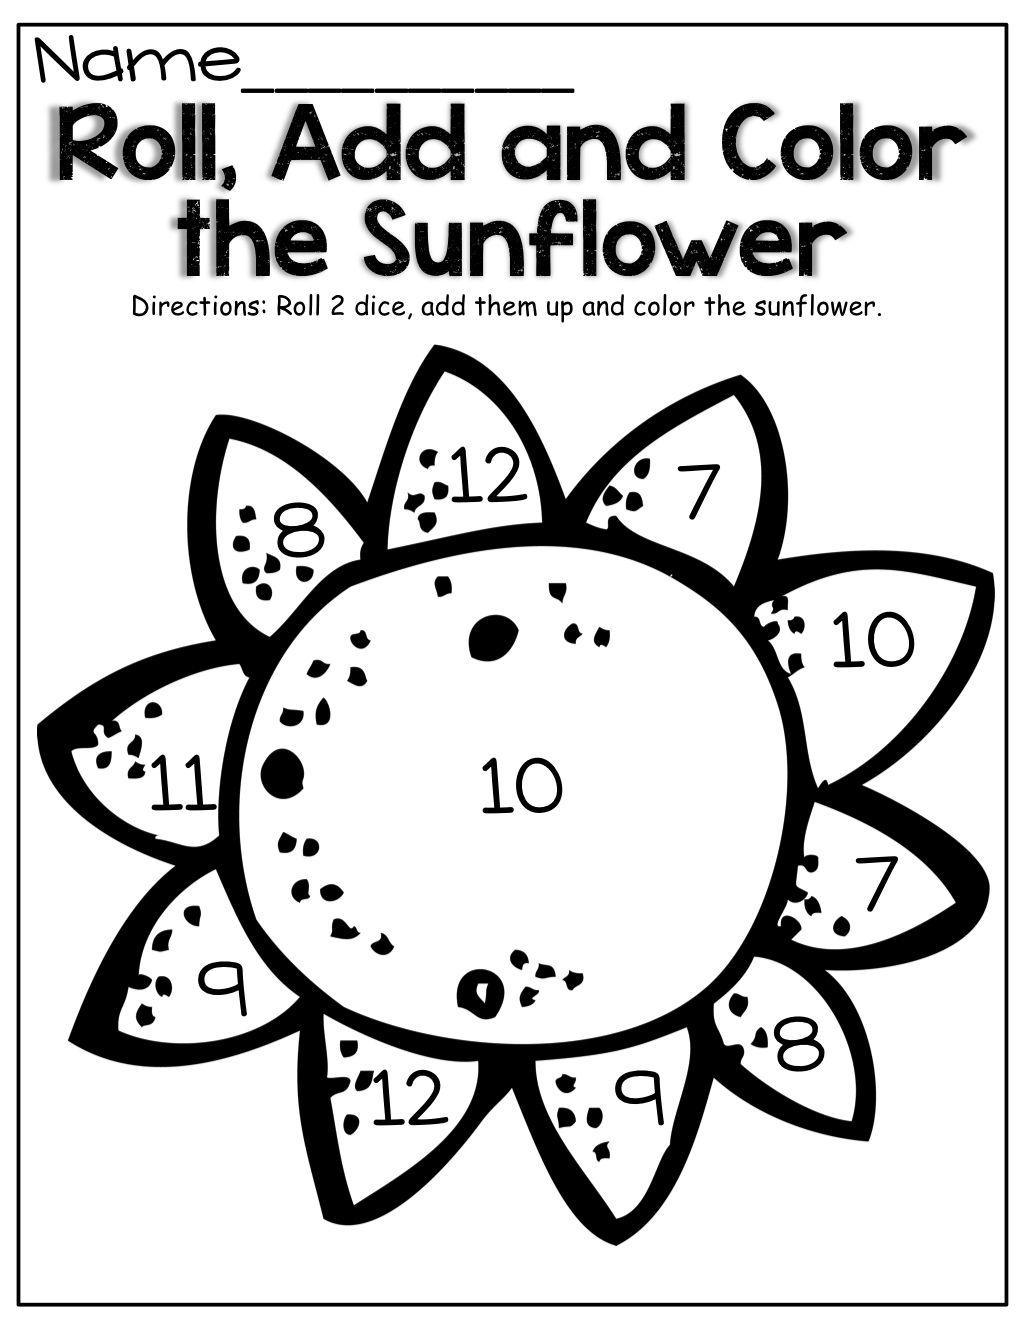 Roll 2 Dice Add Them Up And Color The Sunflower Fun Way To Practice Simple Addition